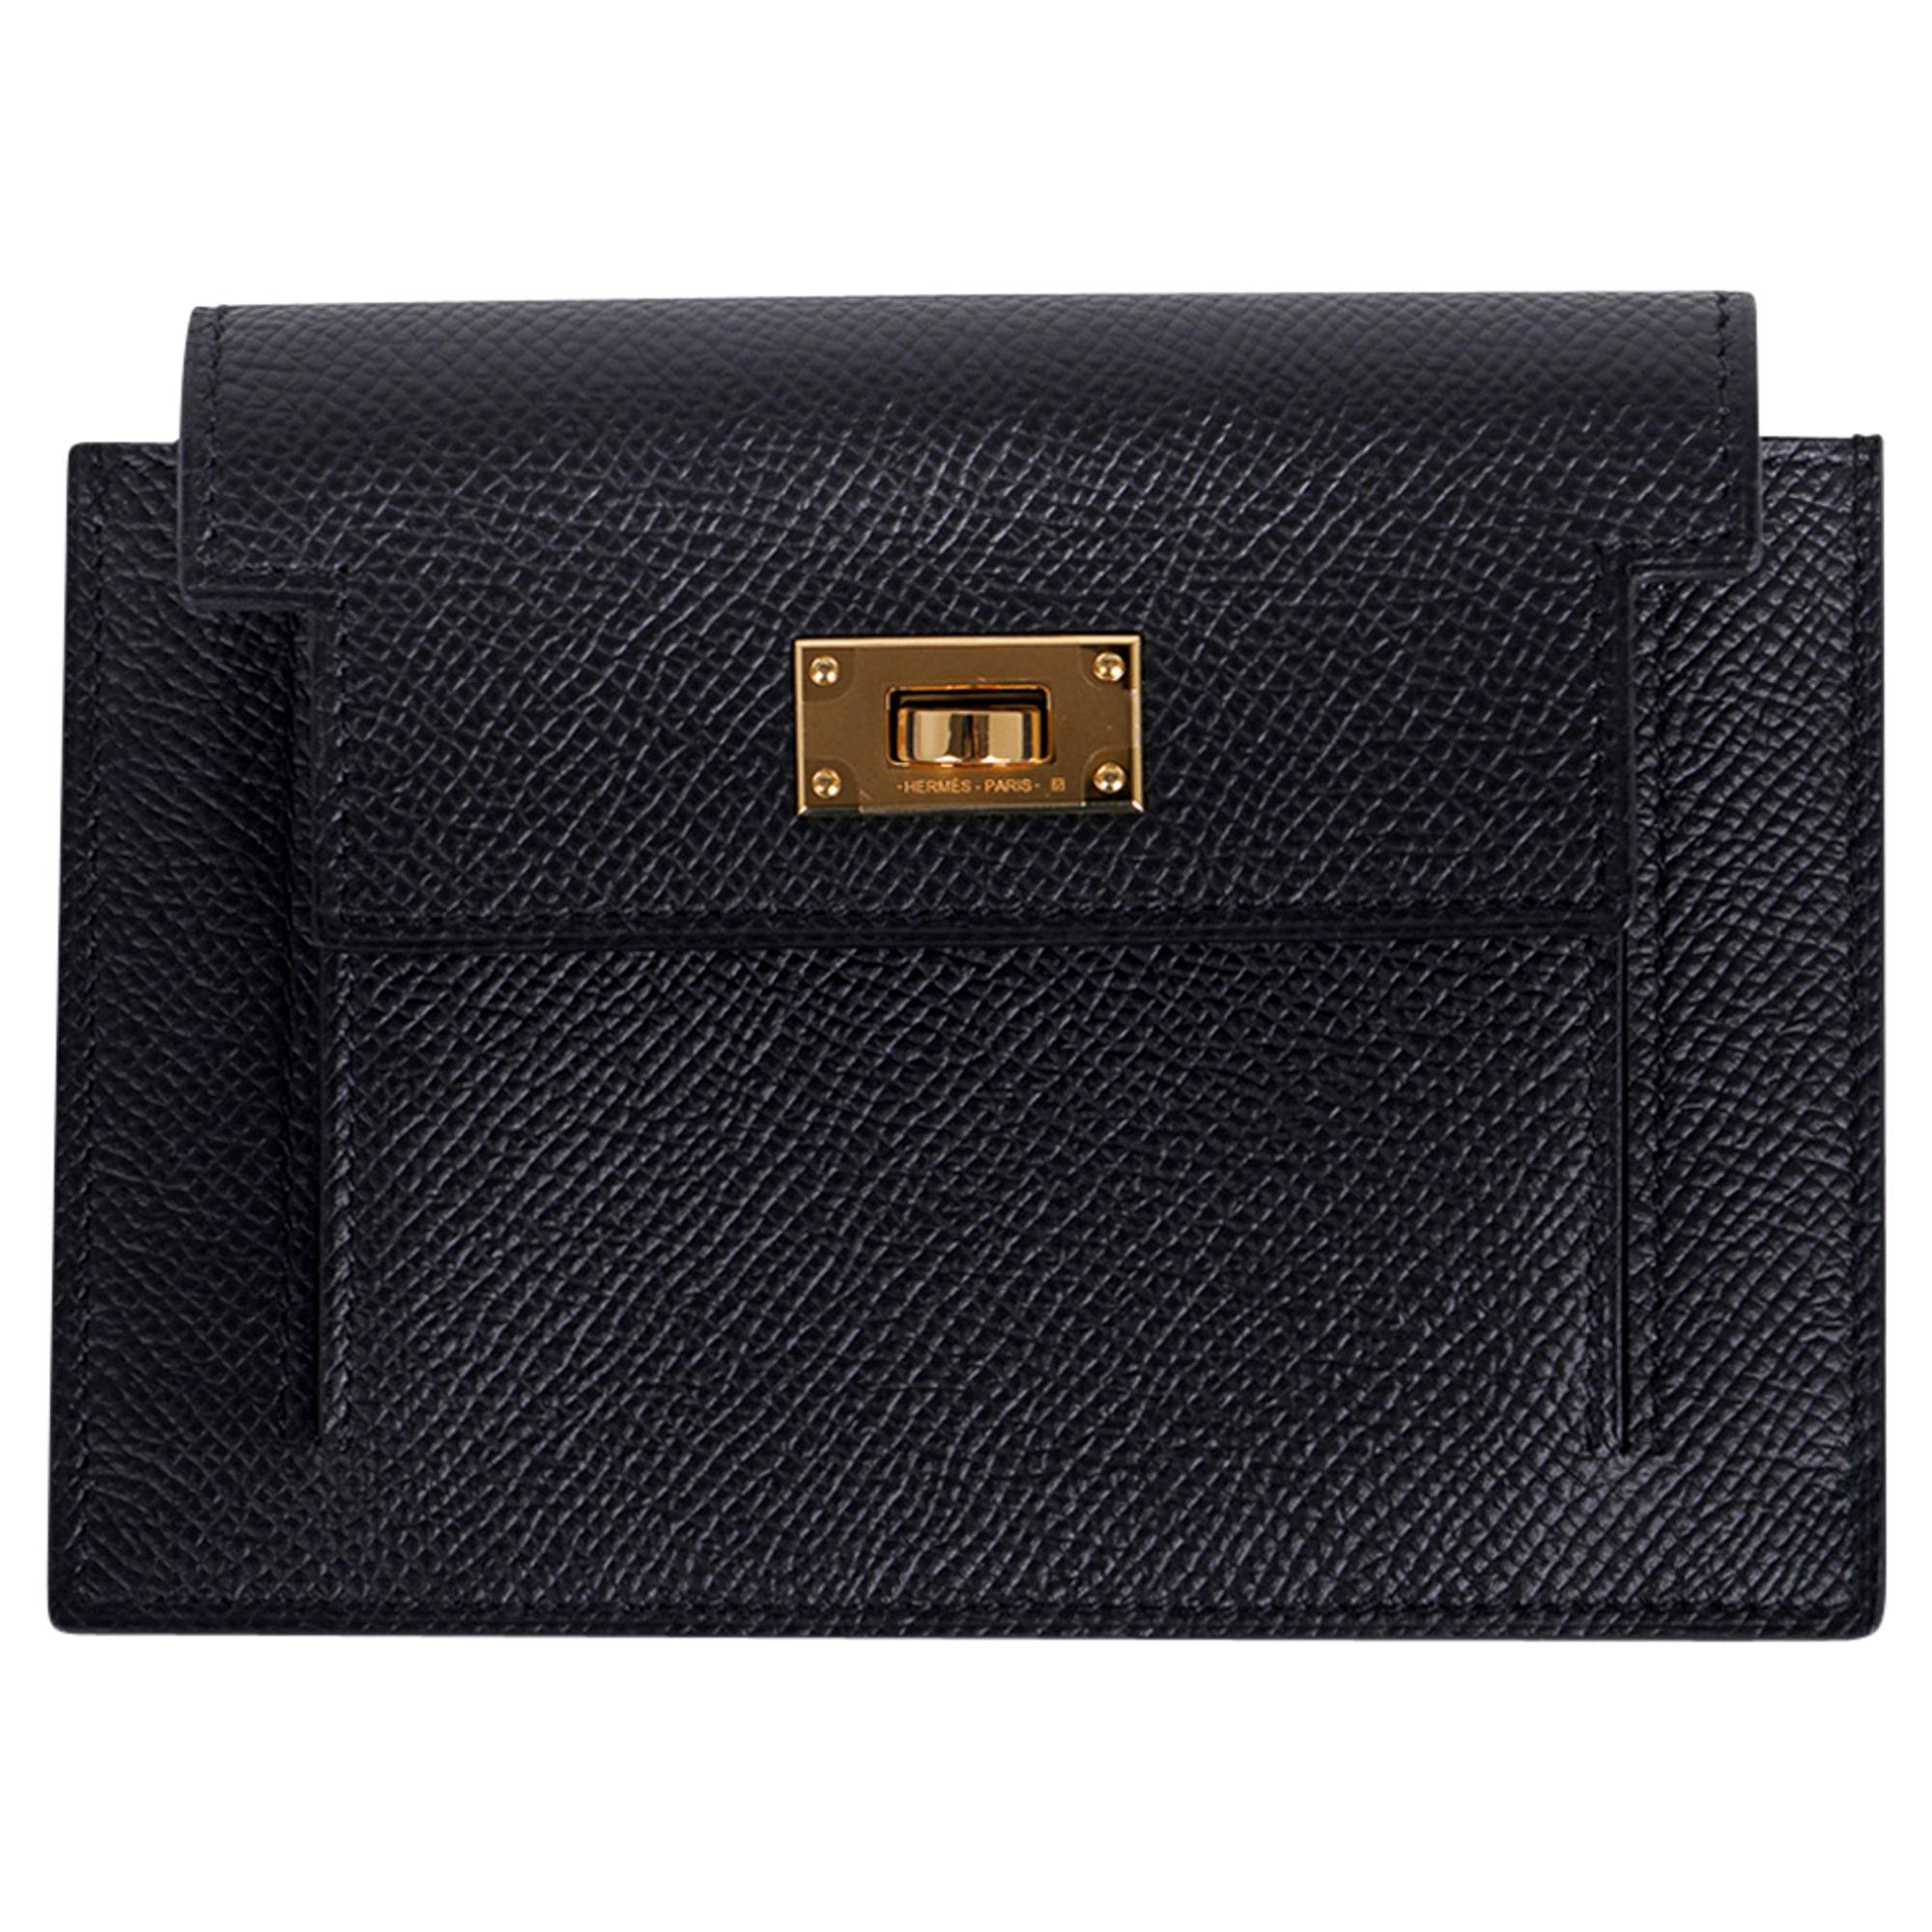 Hermes Kelly Pocket Compact Wallet Noir Epsom Gold Hardware New w/Box